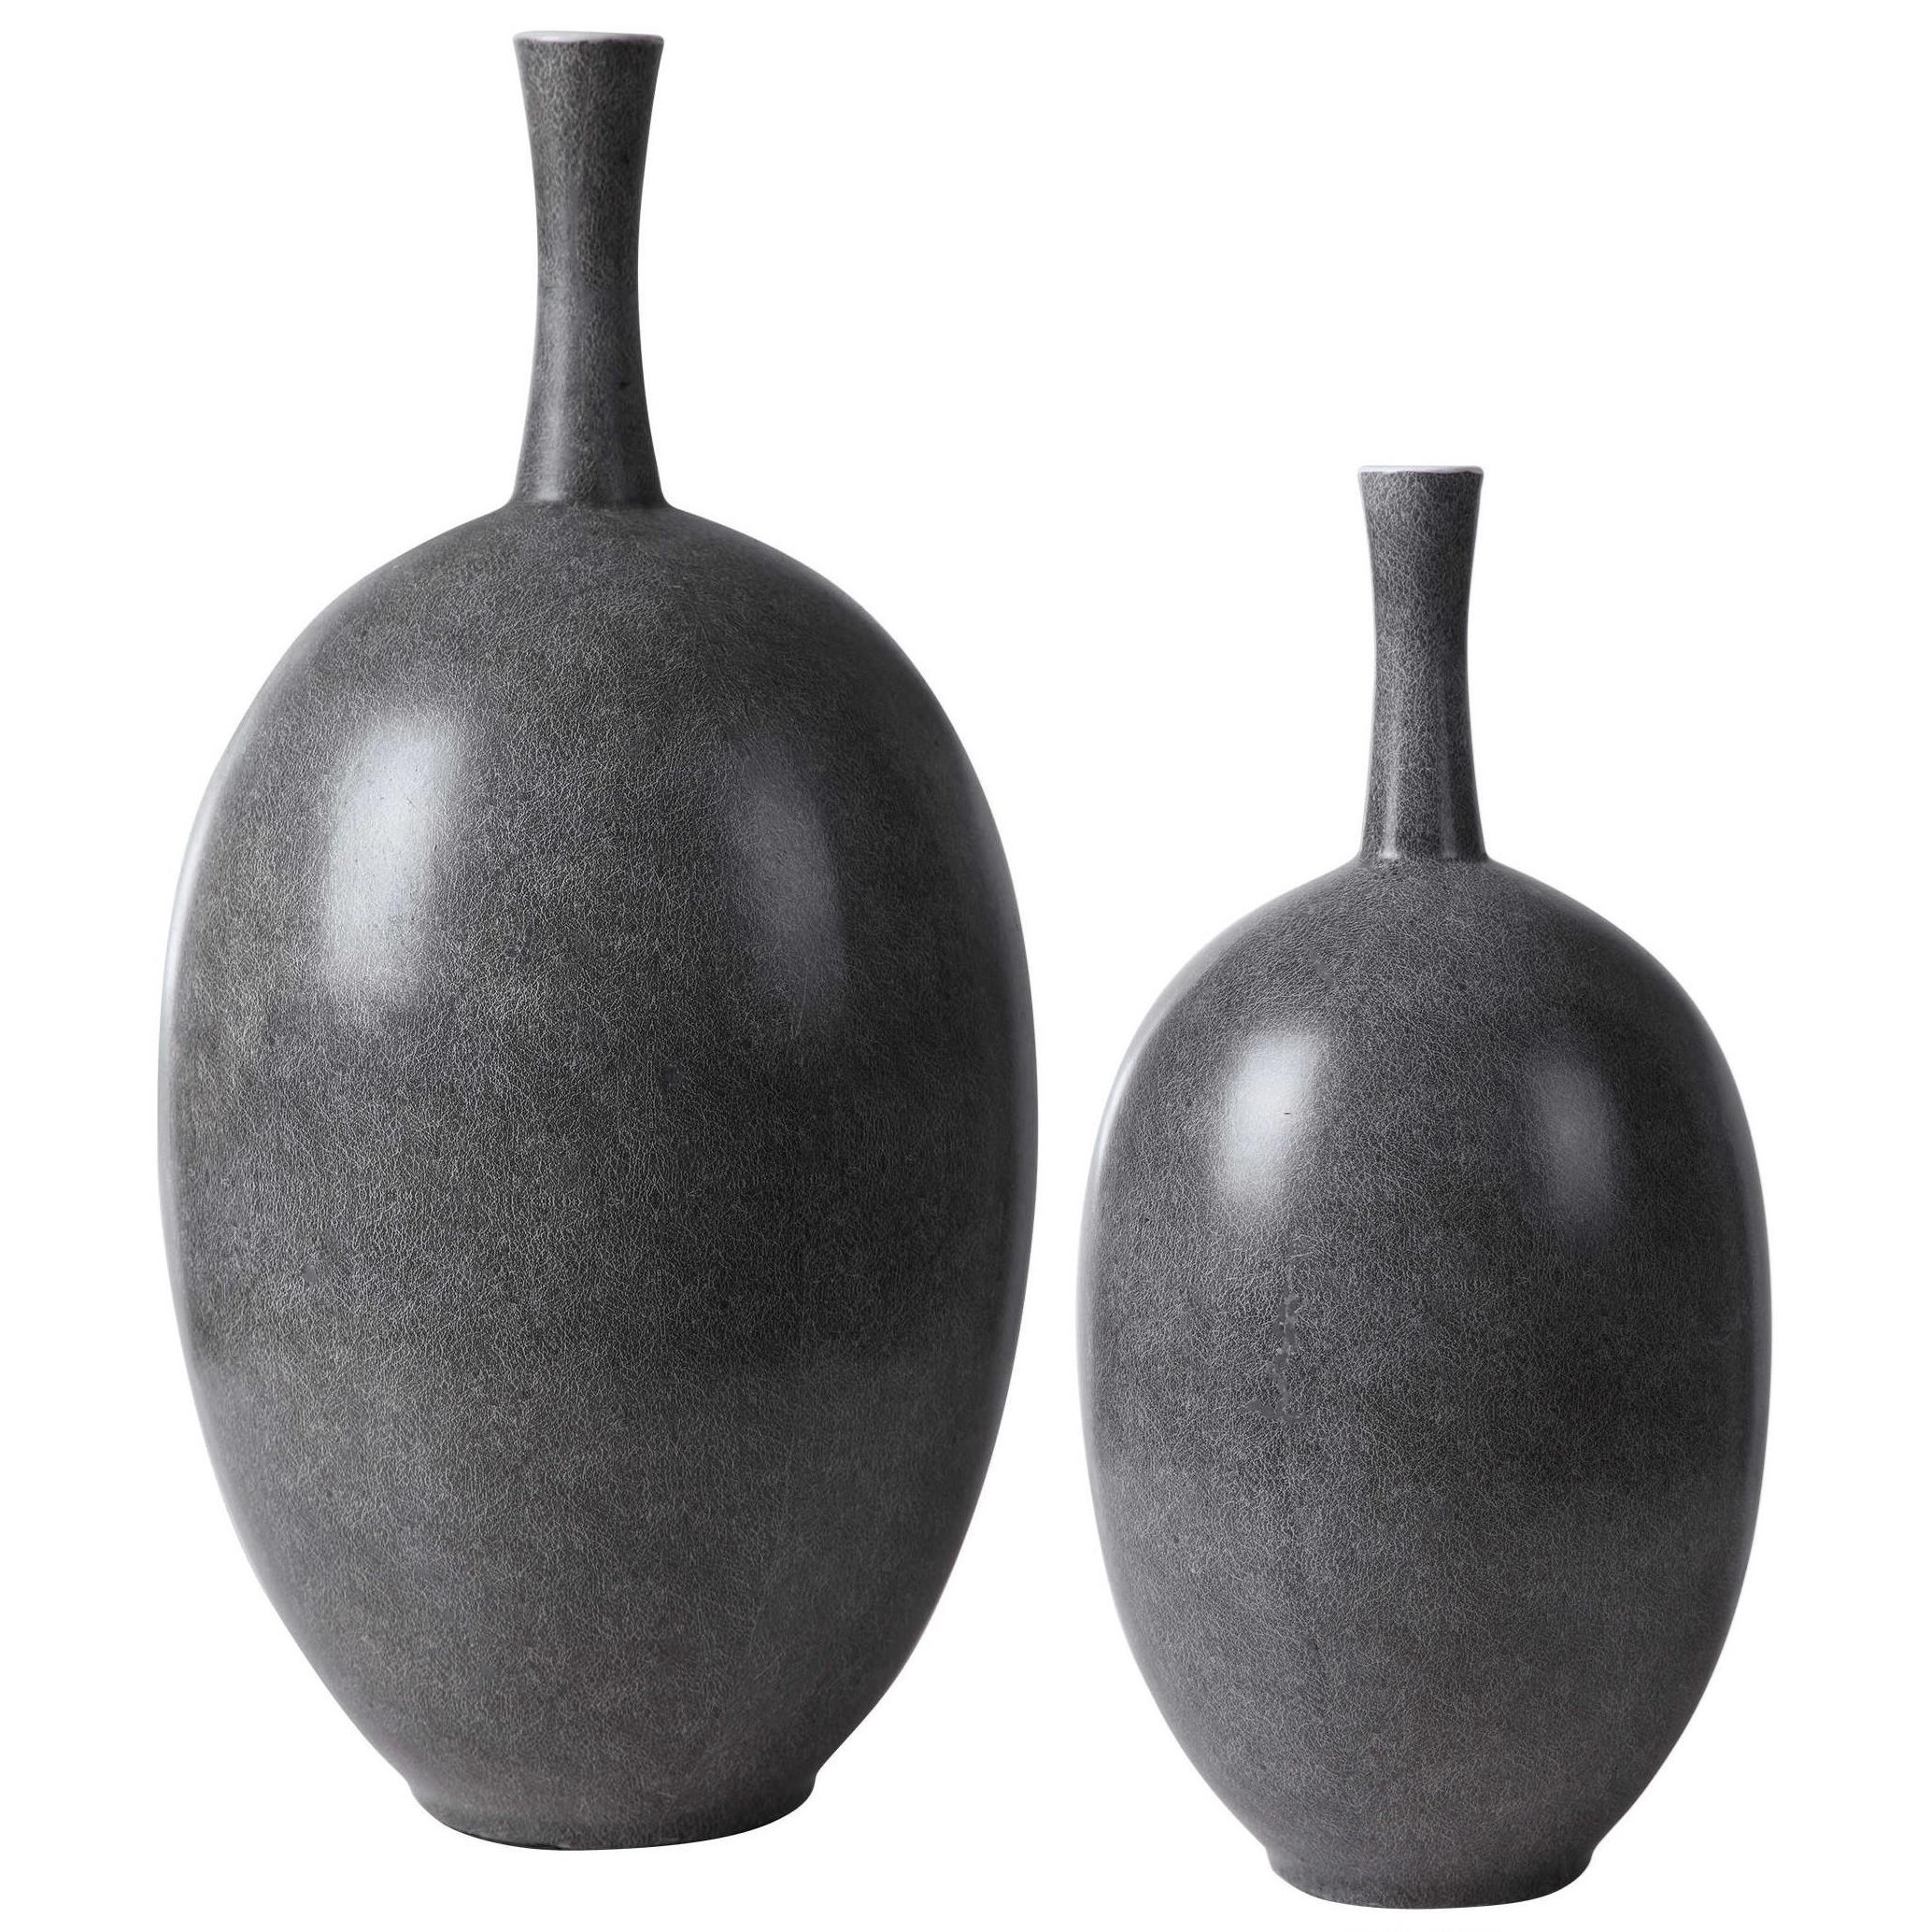 Accessories - Vases and Urns Riordan Modern Vases, S/2 by Uttermost at Mueller Furniture